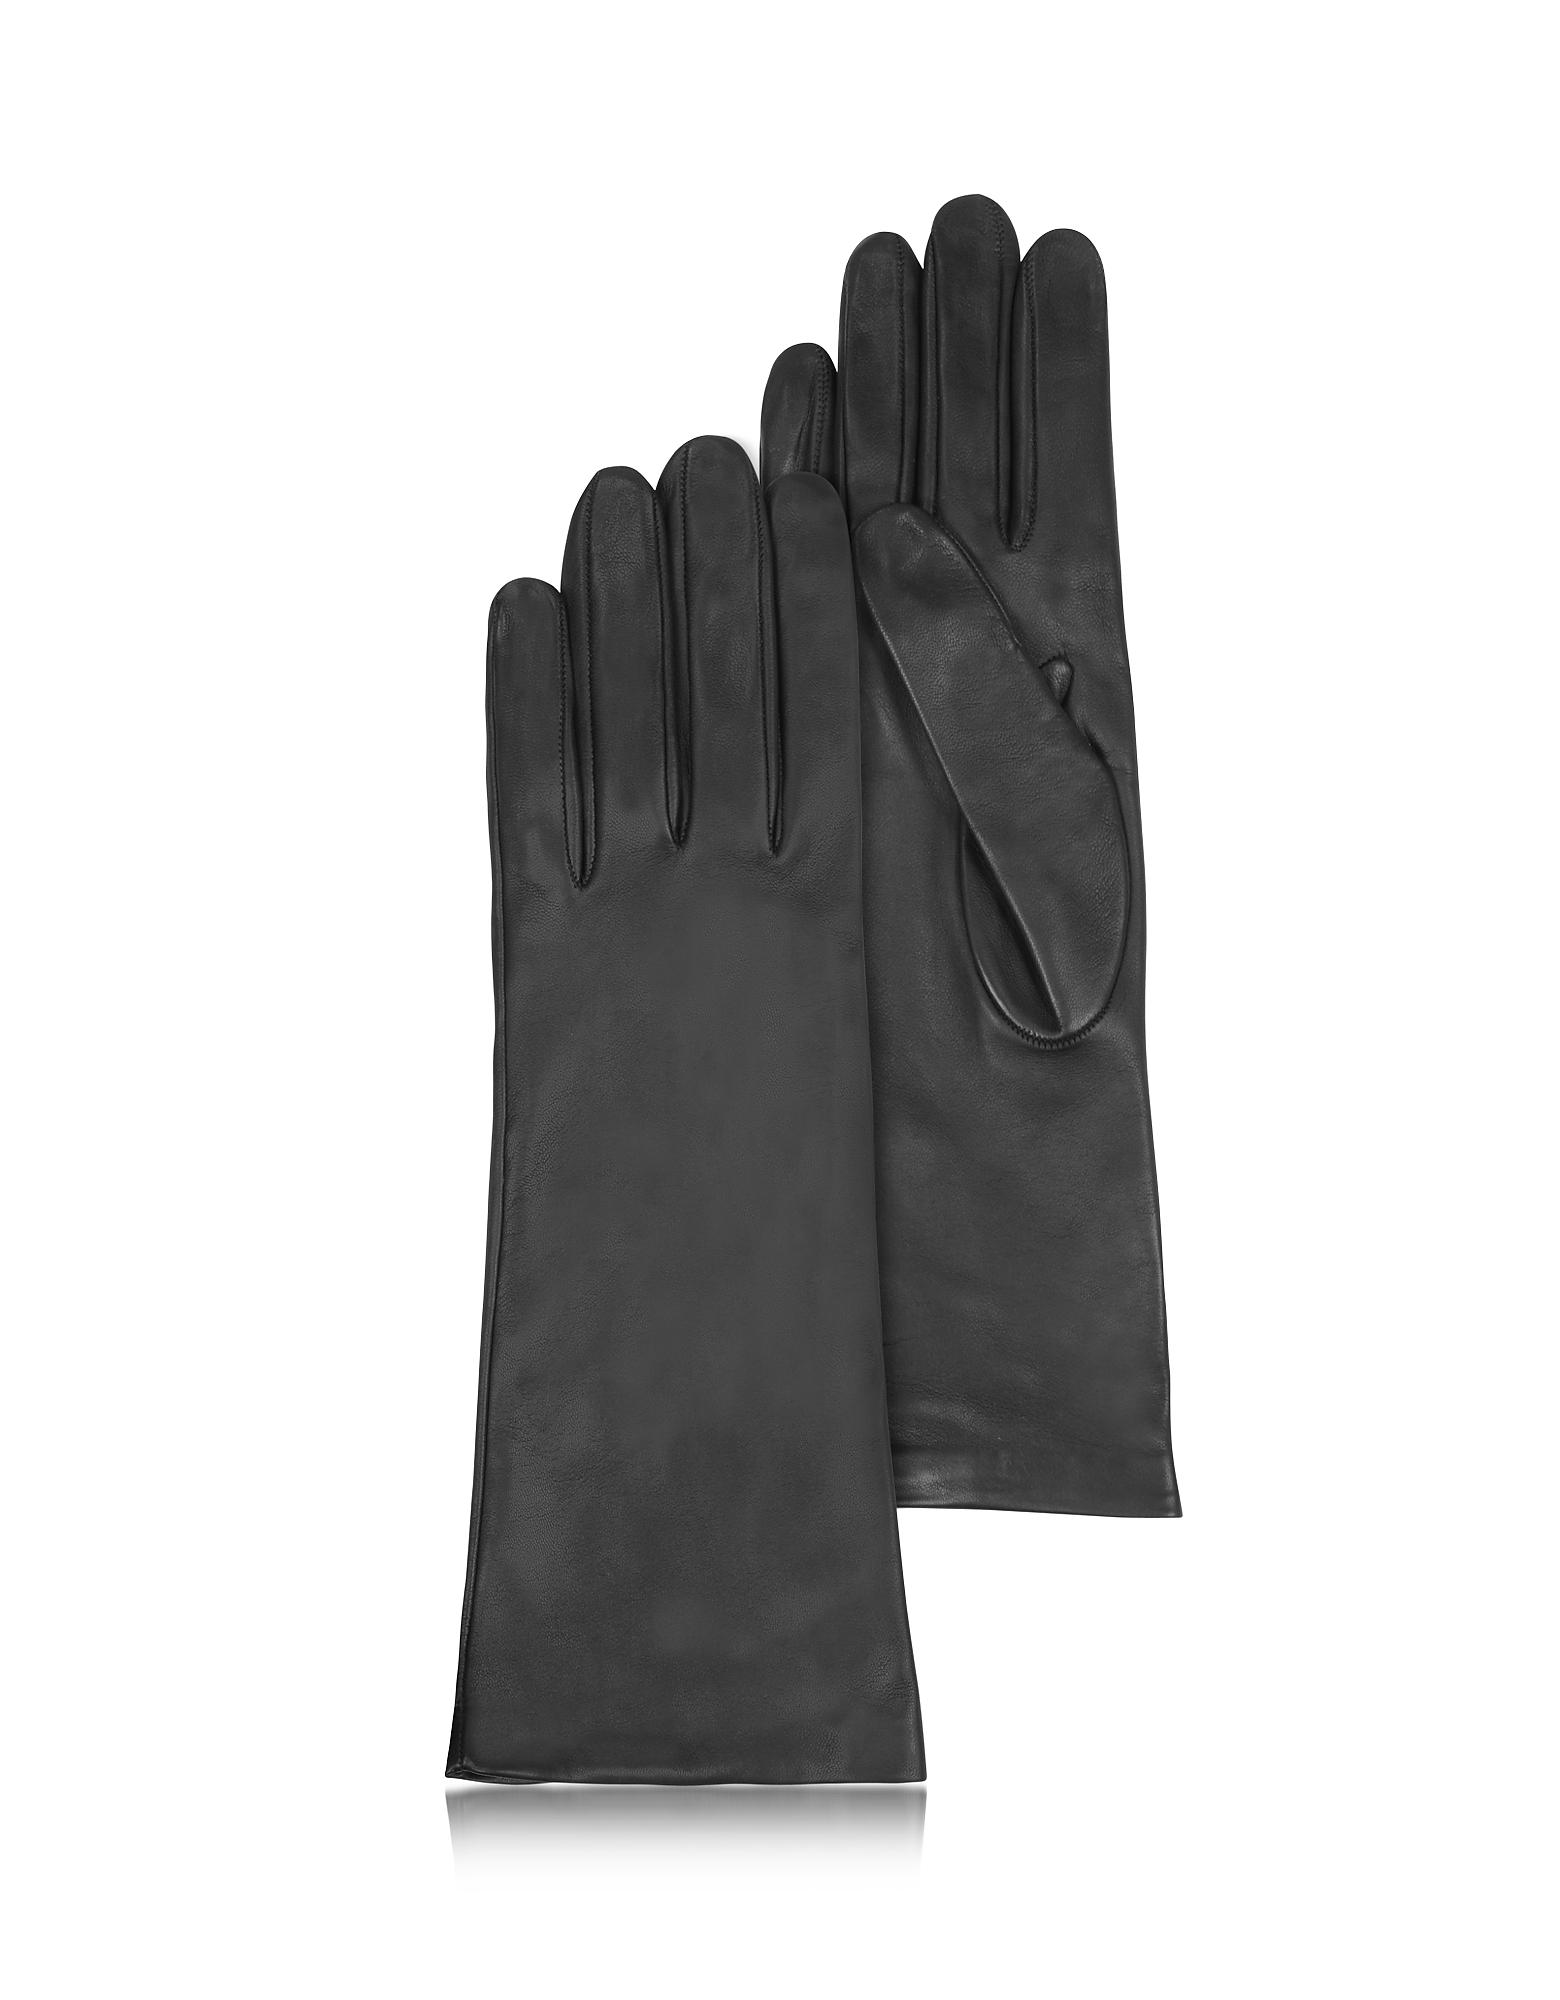 Forzieri Designer Women's Gloves, Women's Silk Lined Black Italian Leather Long Gloves